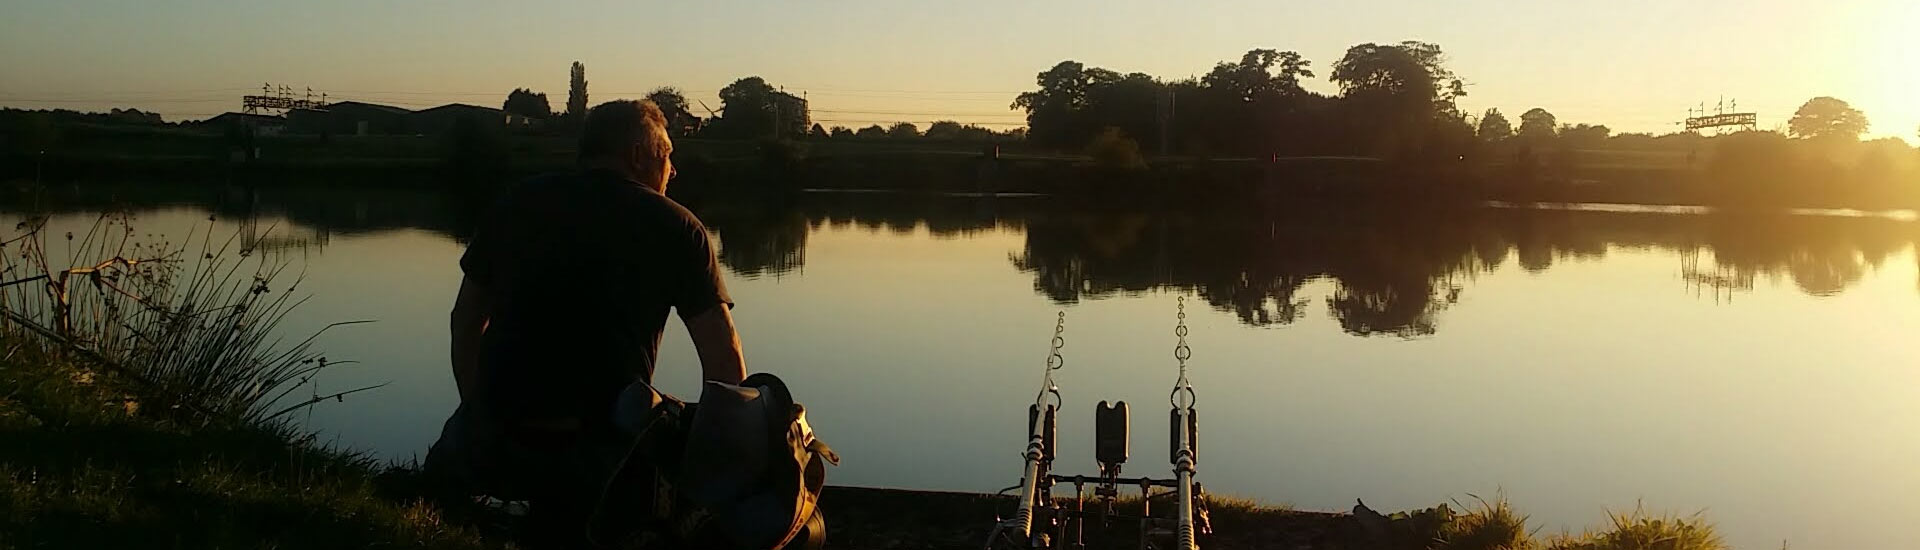 Baden Hall Fishery Staffordshire